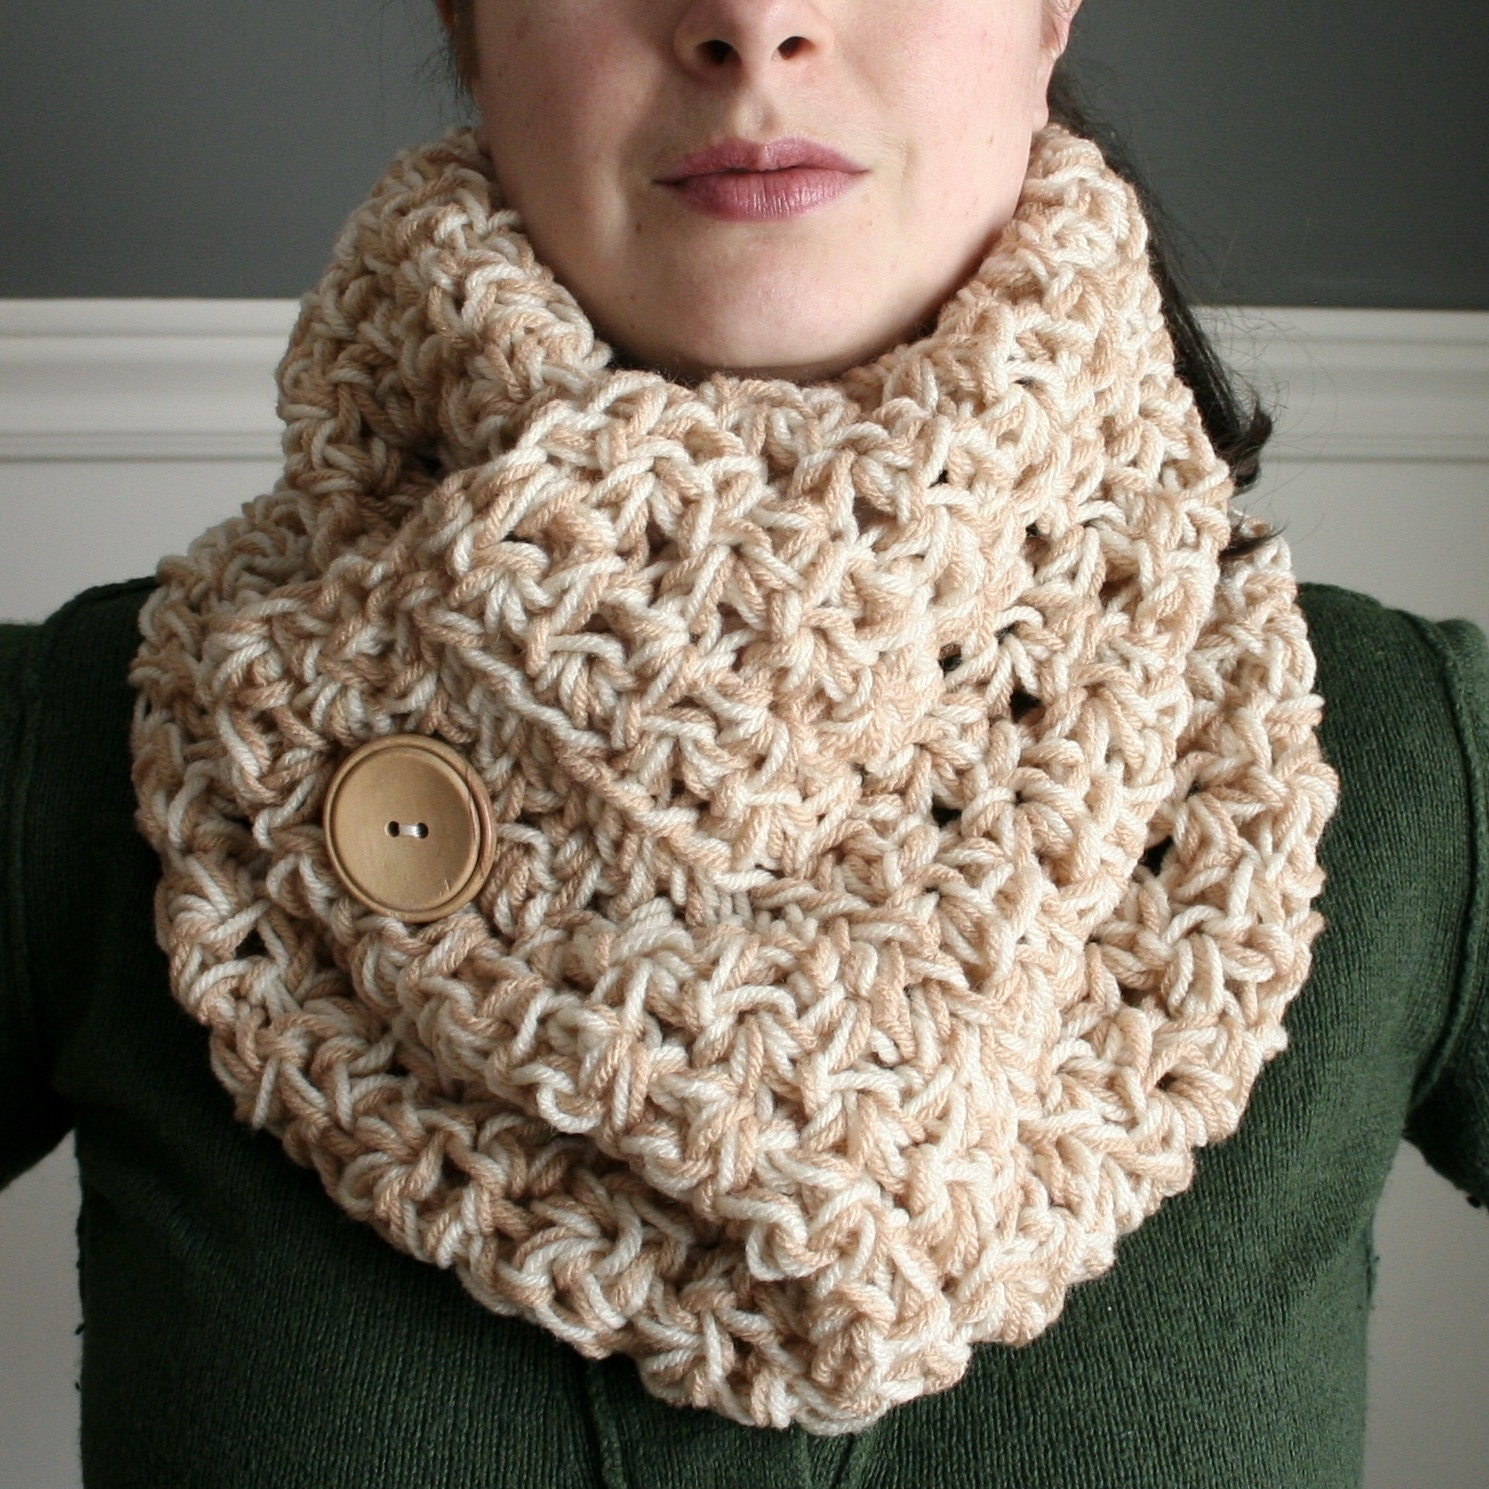 Crocheted Cowl Neck Scarf in Beige and Tan with by TootsandToad Cowl Neck Scarves Crochet